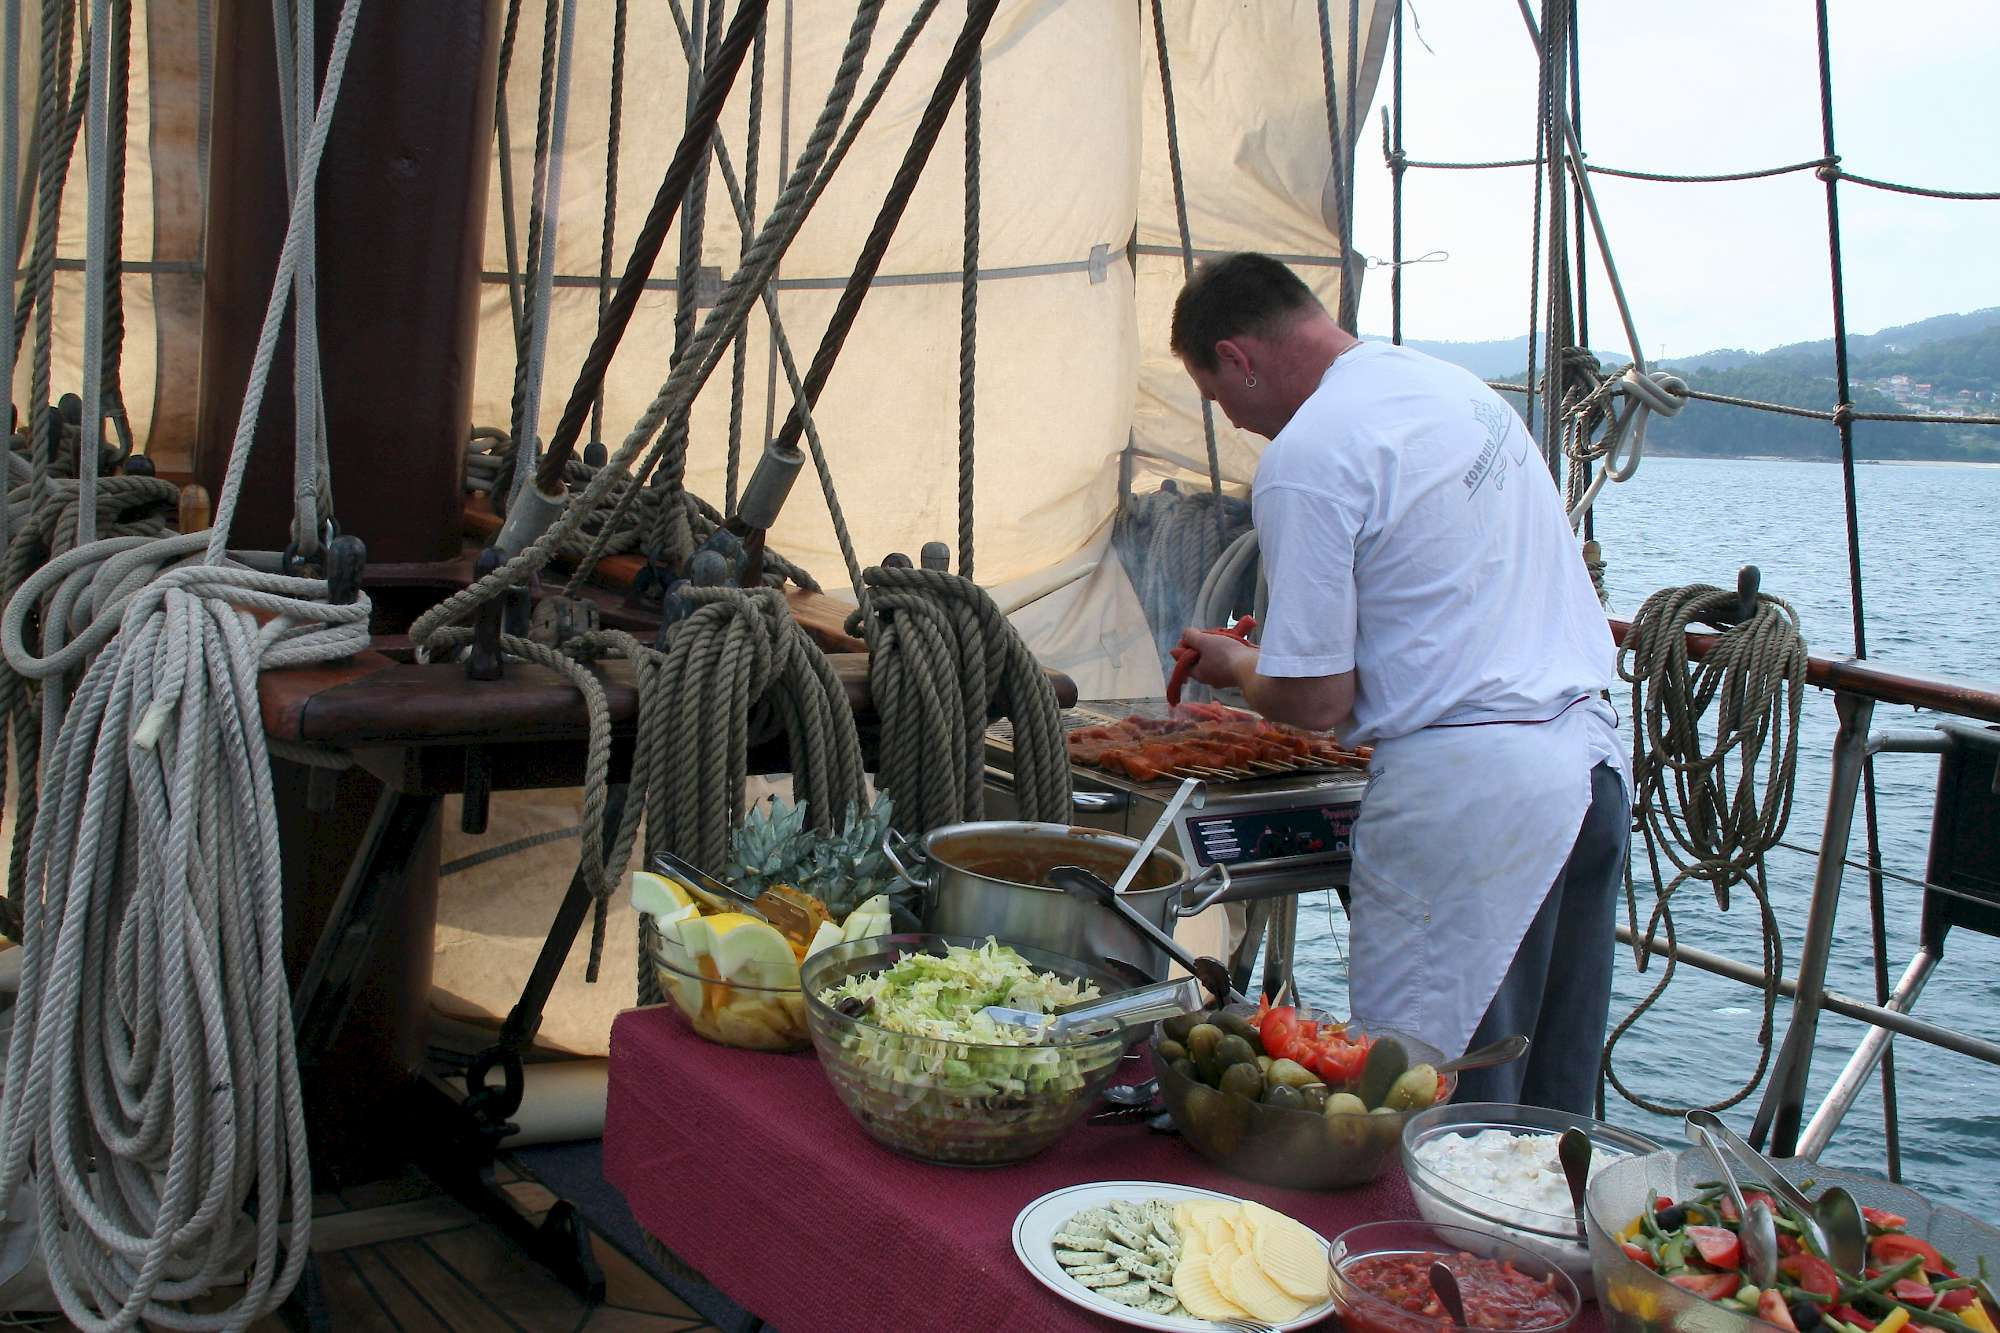 Chef grilling on the deck of the Flying Dutchman